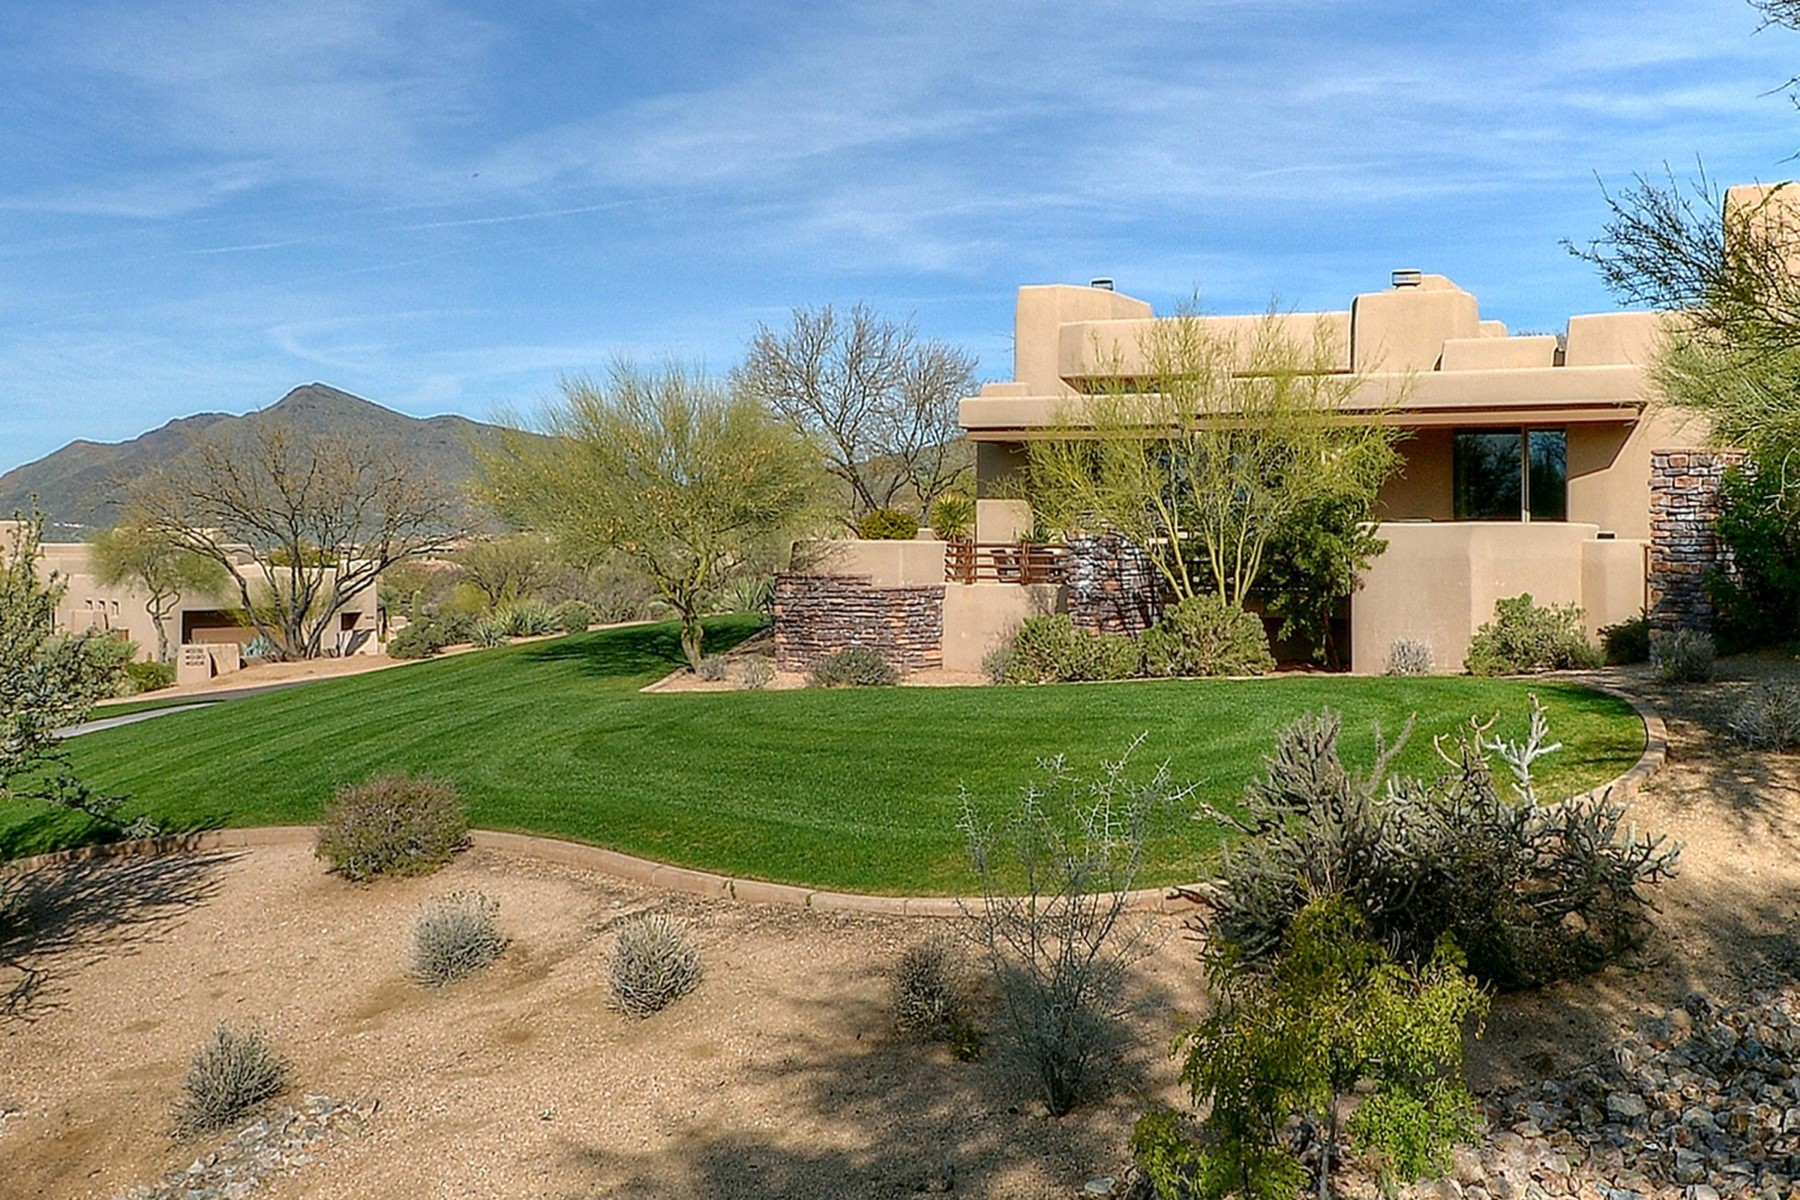 Single Family Home for Sale at Stunning property in the Apache Cottage enclave 40119 N 110th Pl Scottsdale, Arizona, 85262 United States